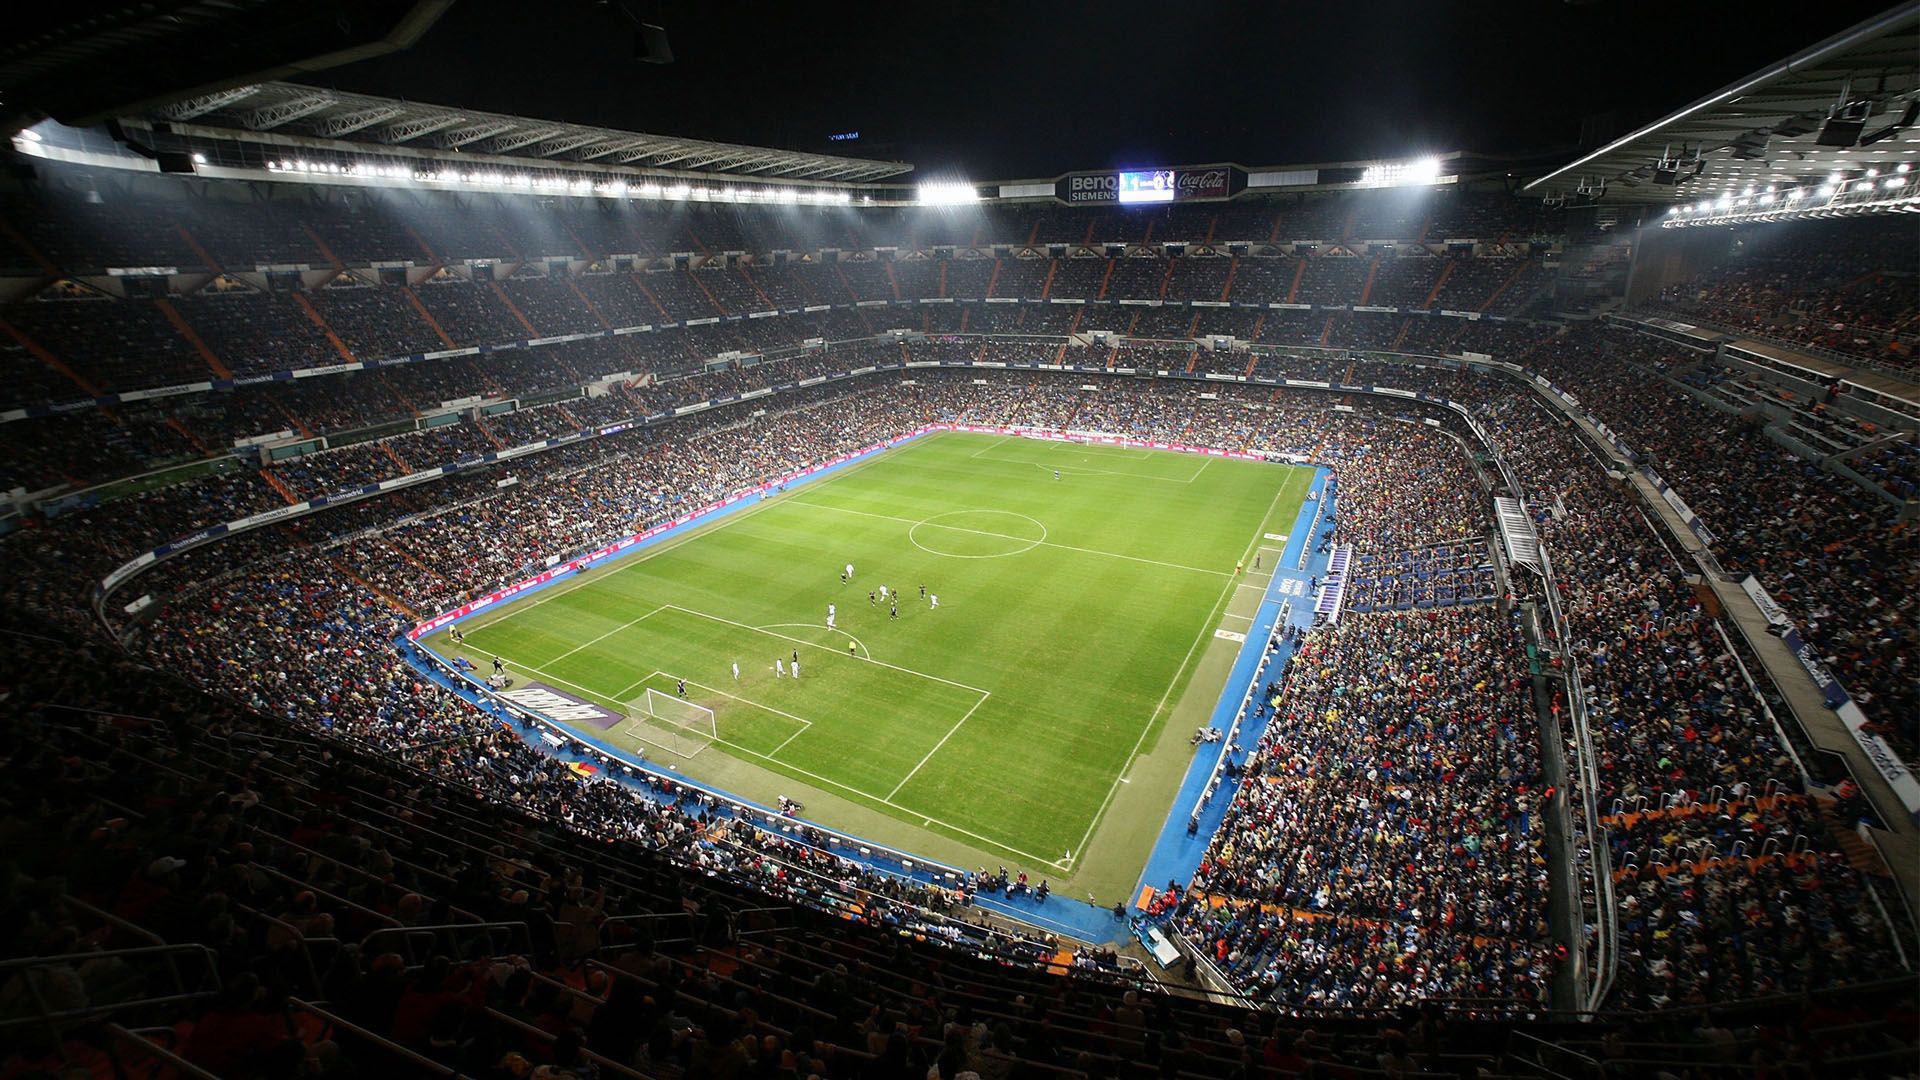 Santiago Bernabeu Real Madrid stadium wallpaper